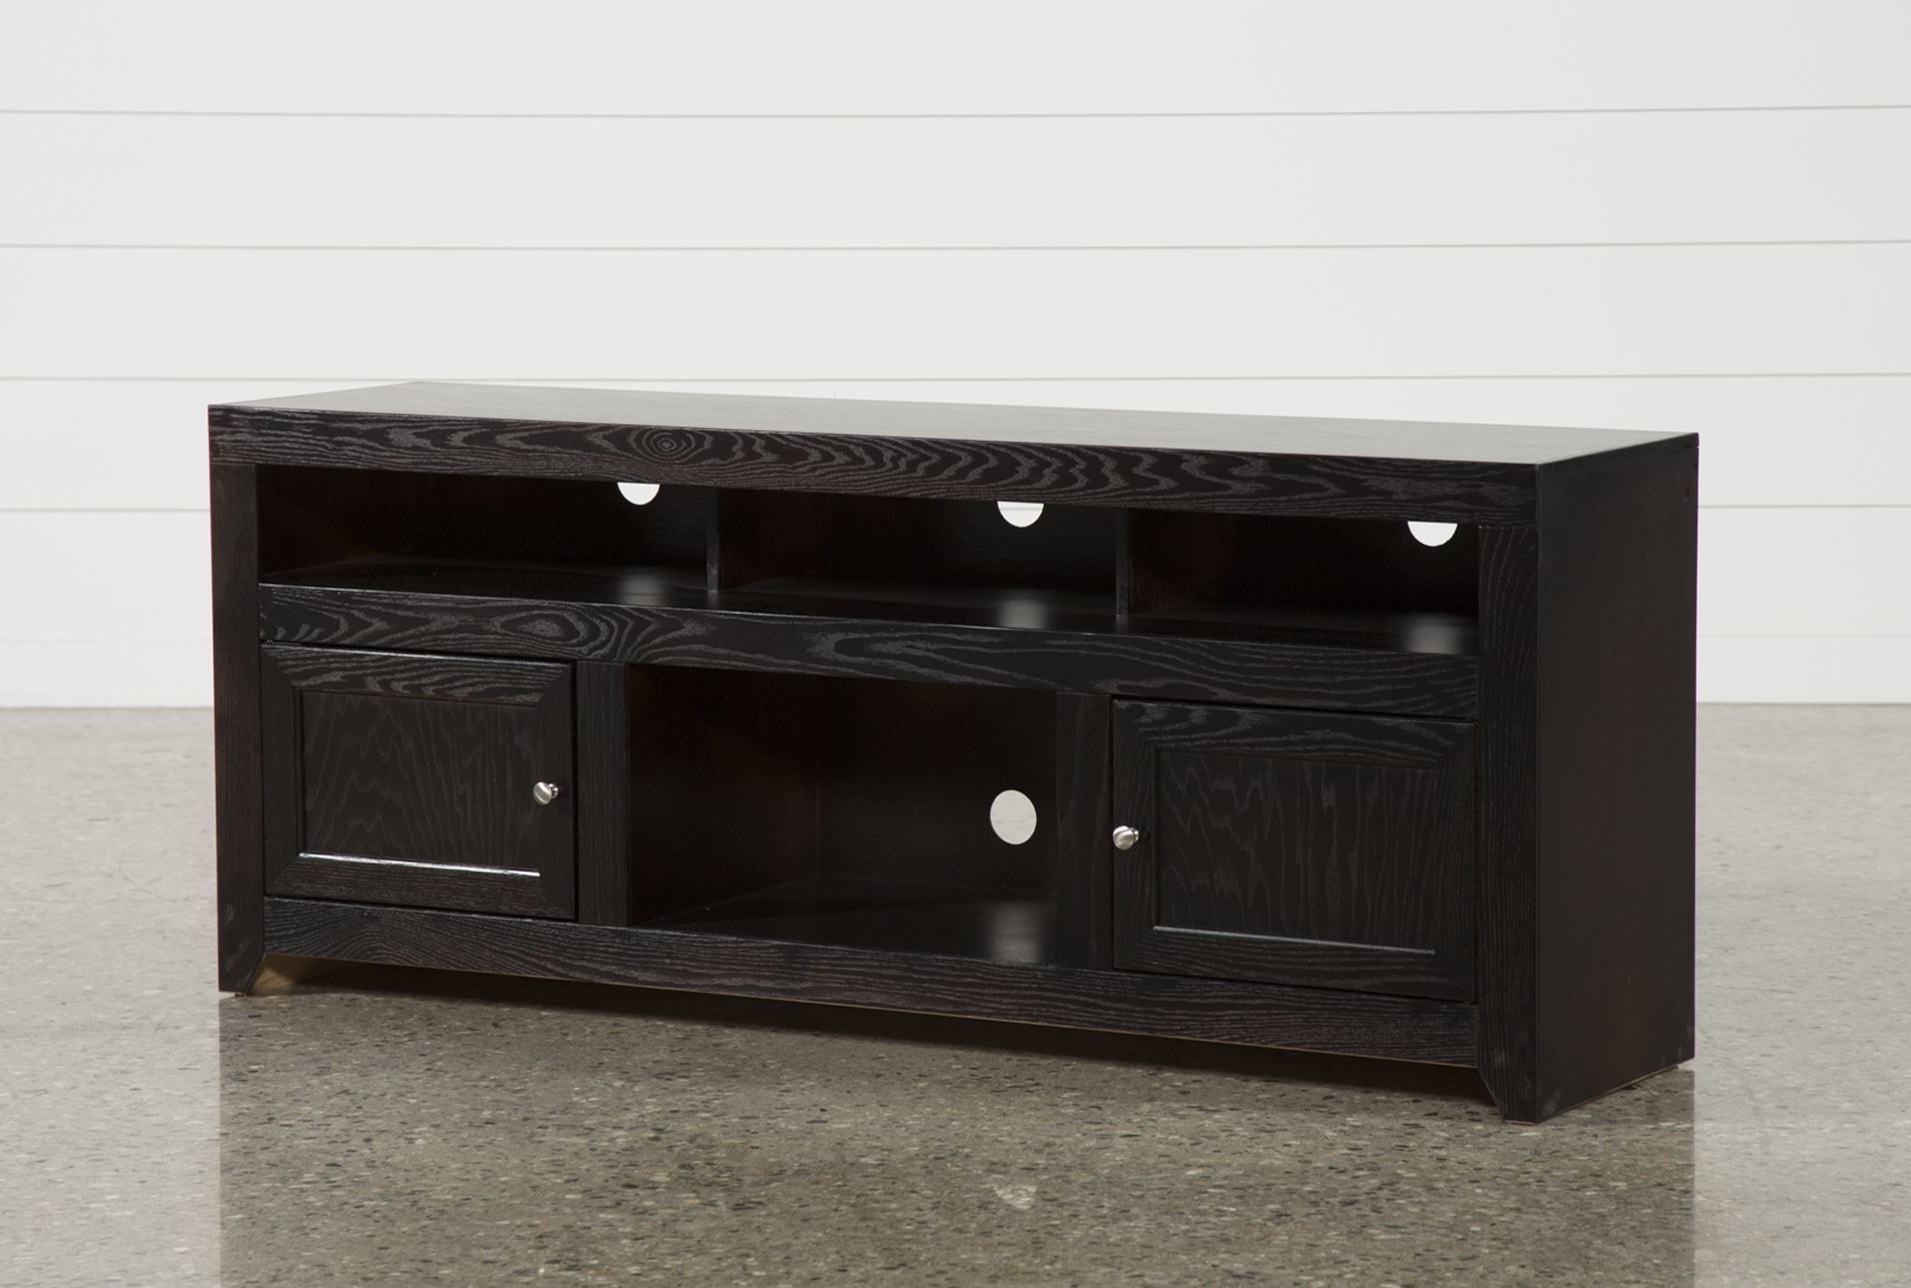 65 Inch Tv Stand (View 5 of 20)